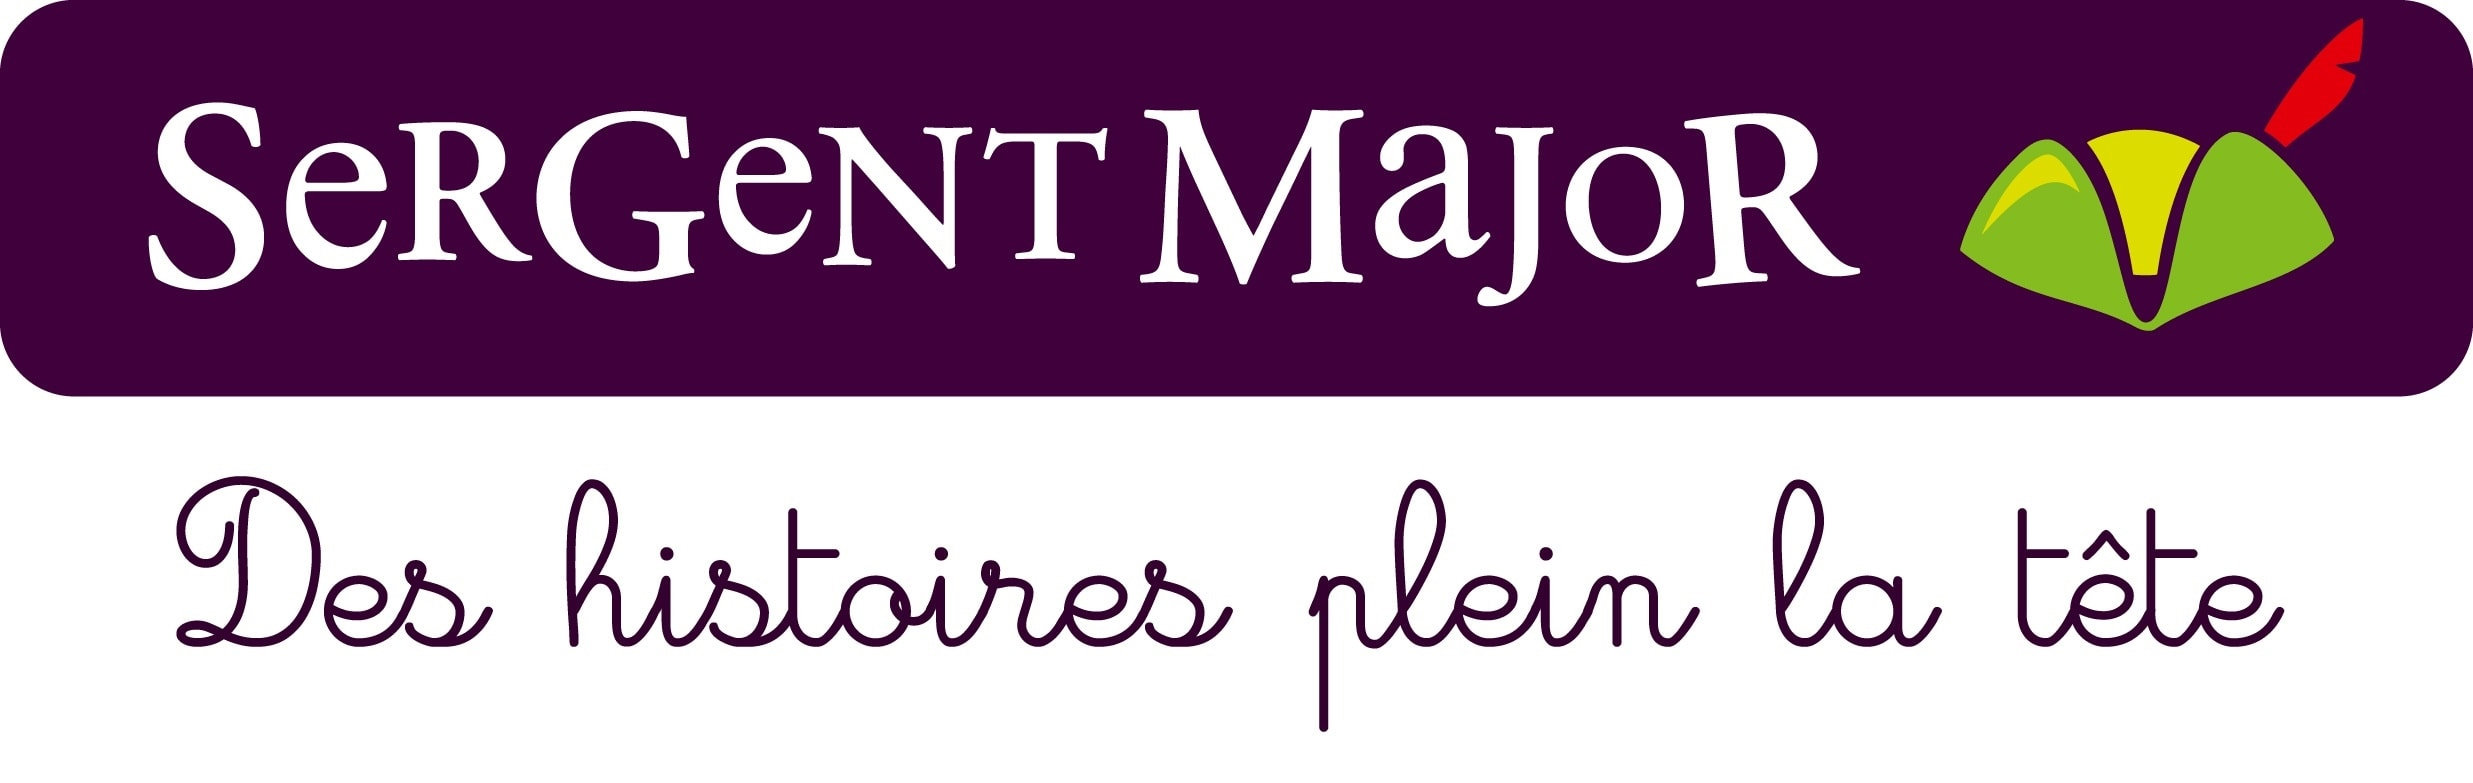 Sergent Major logo